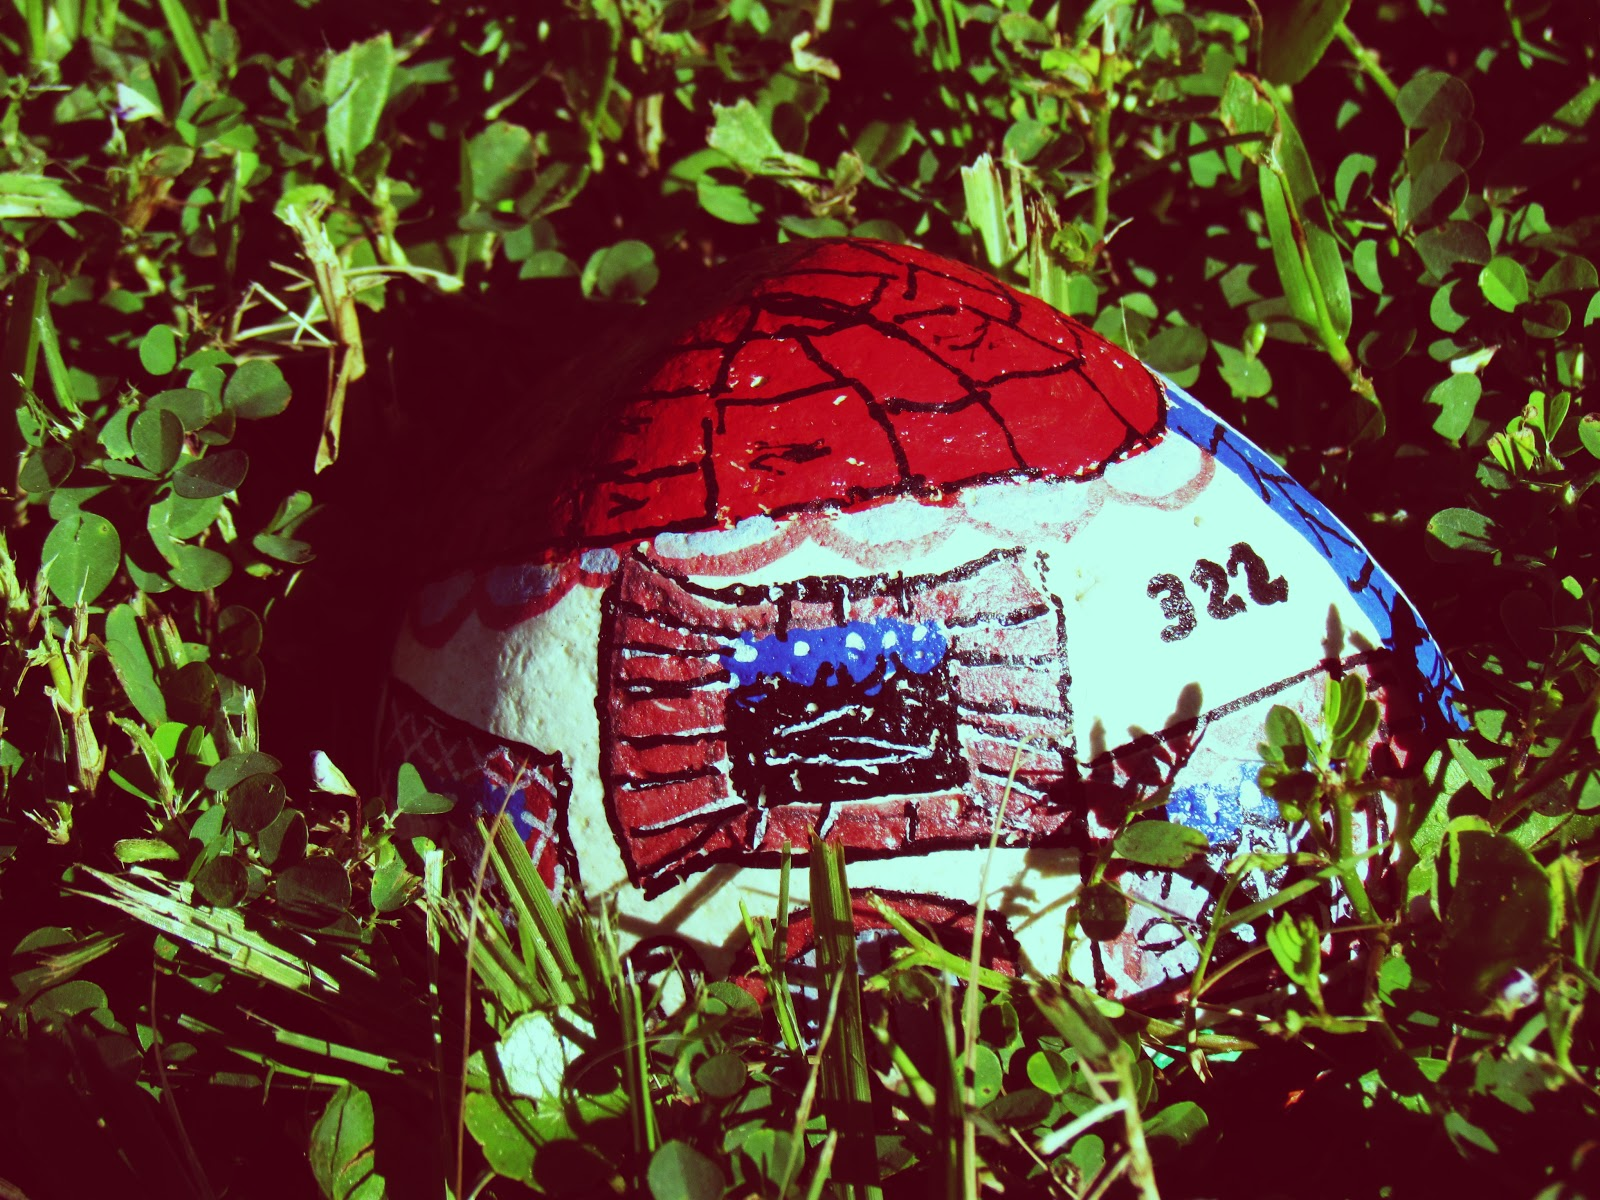 A fairy house painted rock in cute cottage red roof display on green grass in backyard